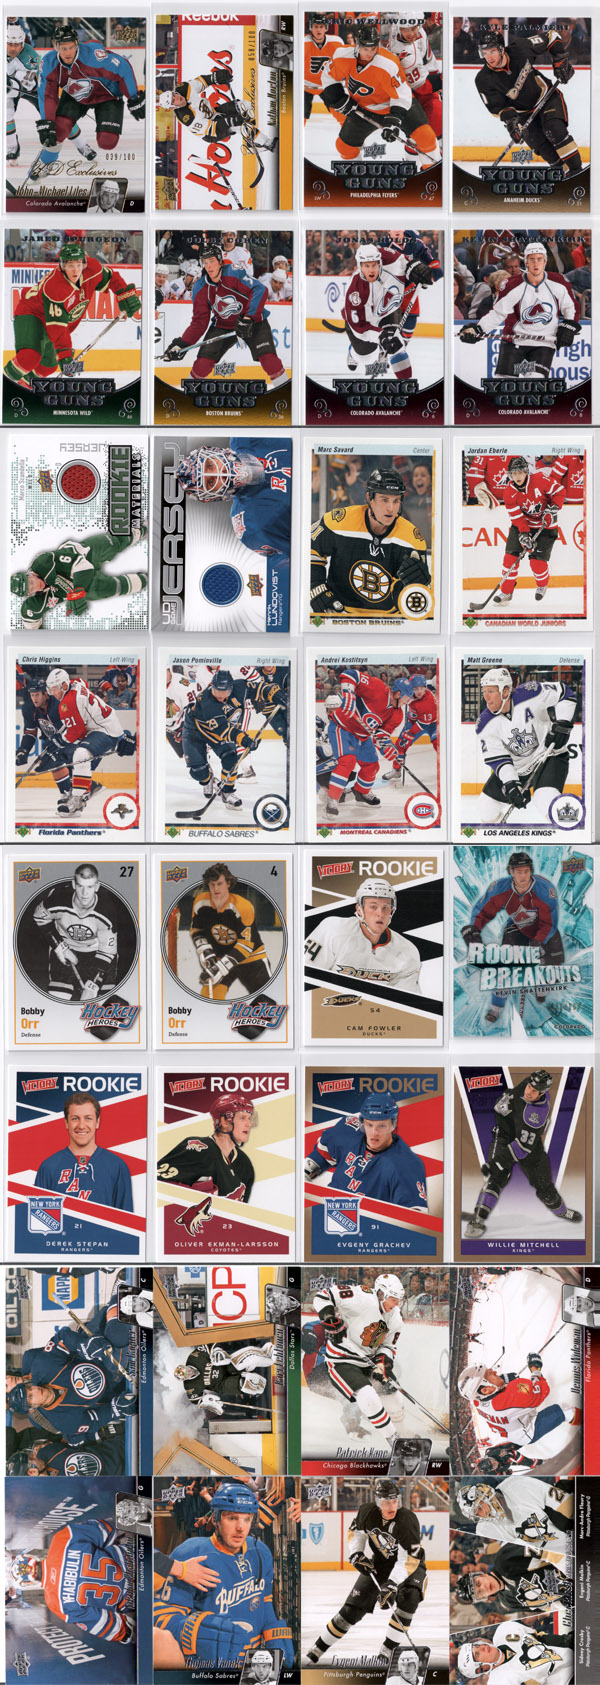 2010-11 Upper Deck Series 2 Hockey Product Review 10